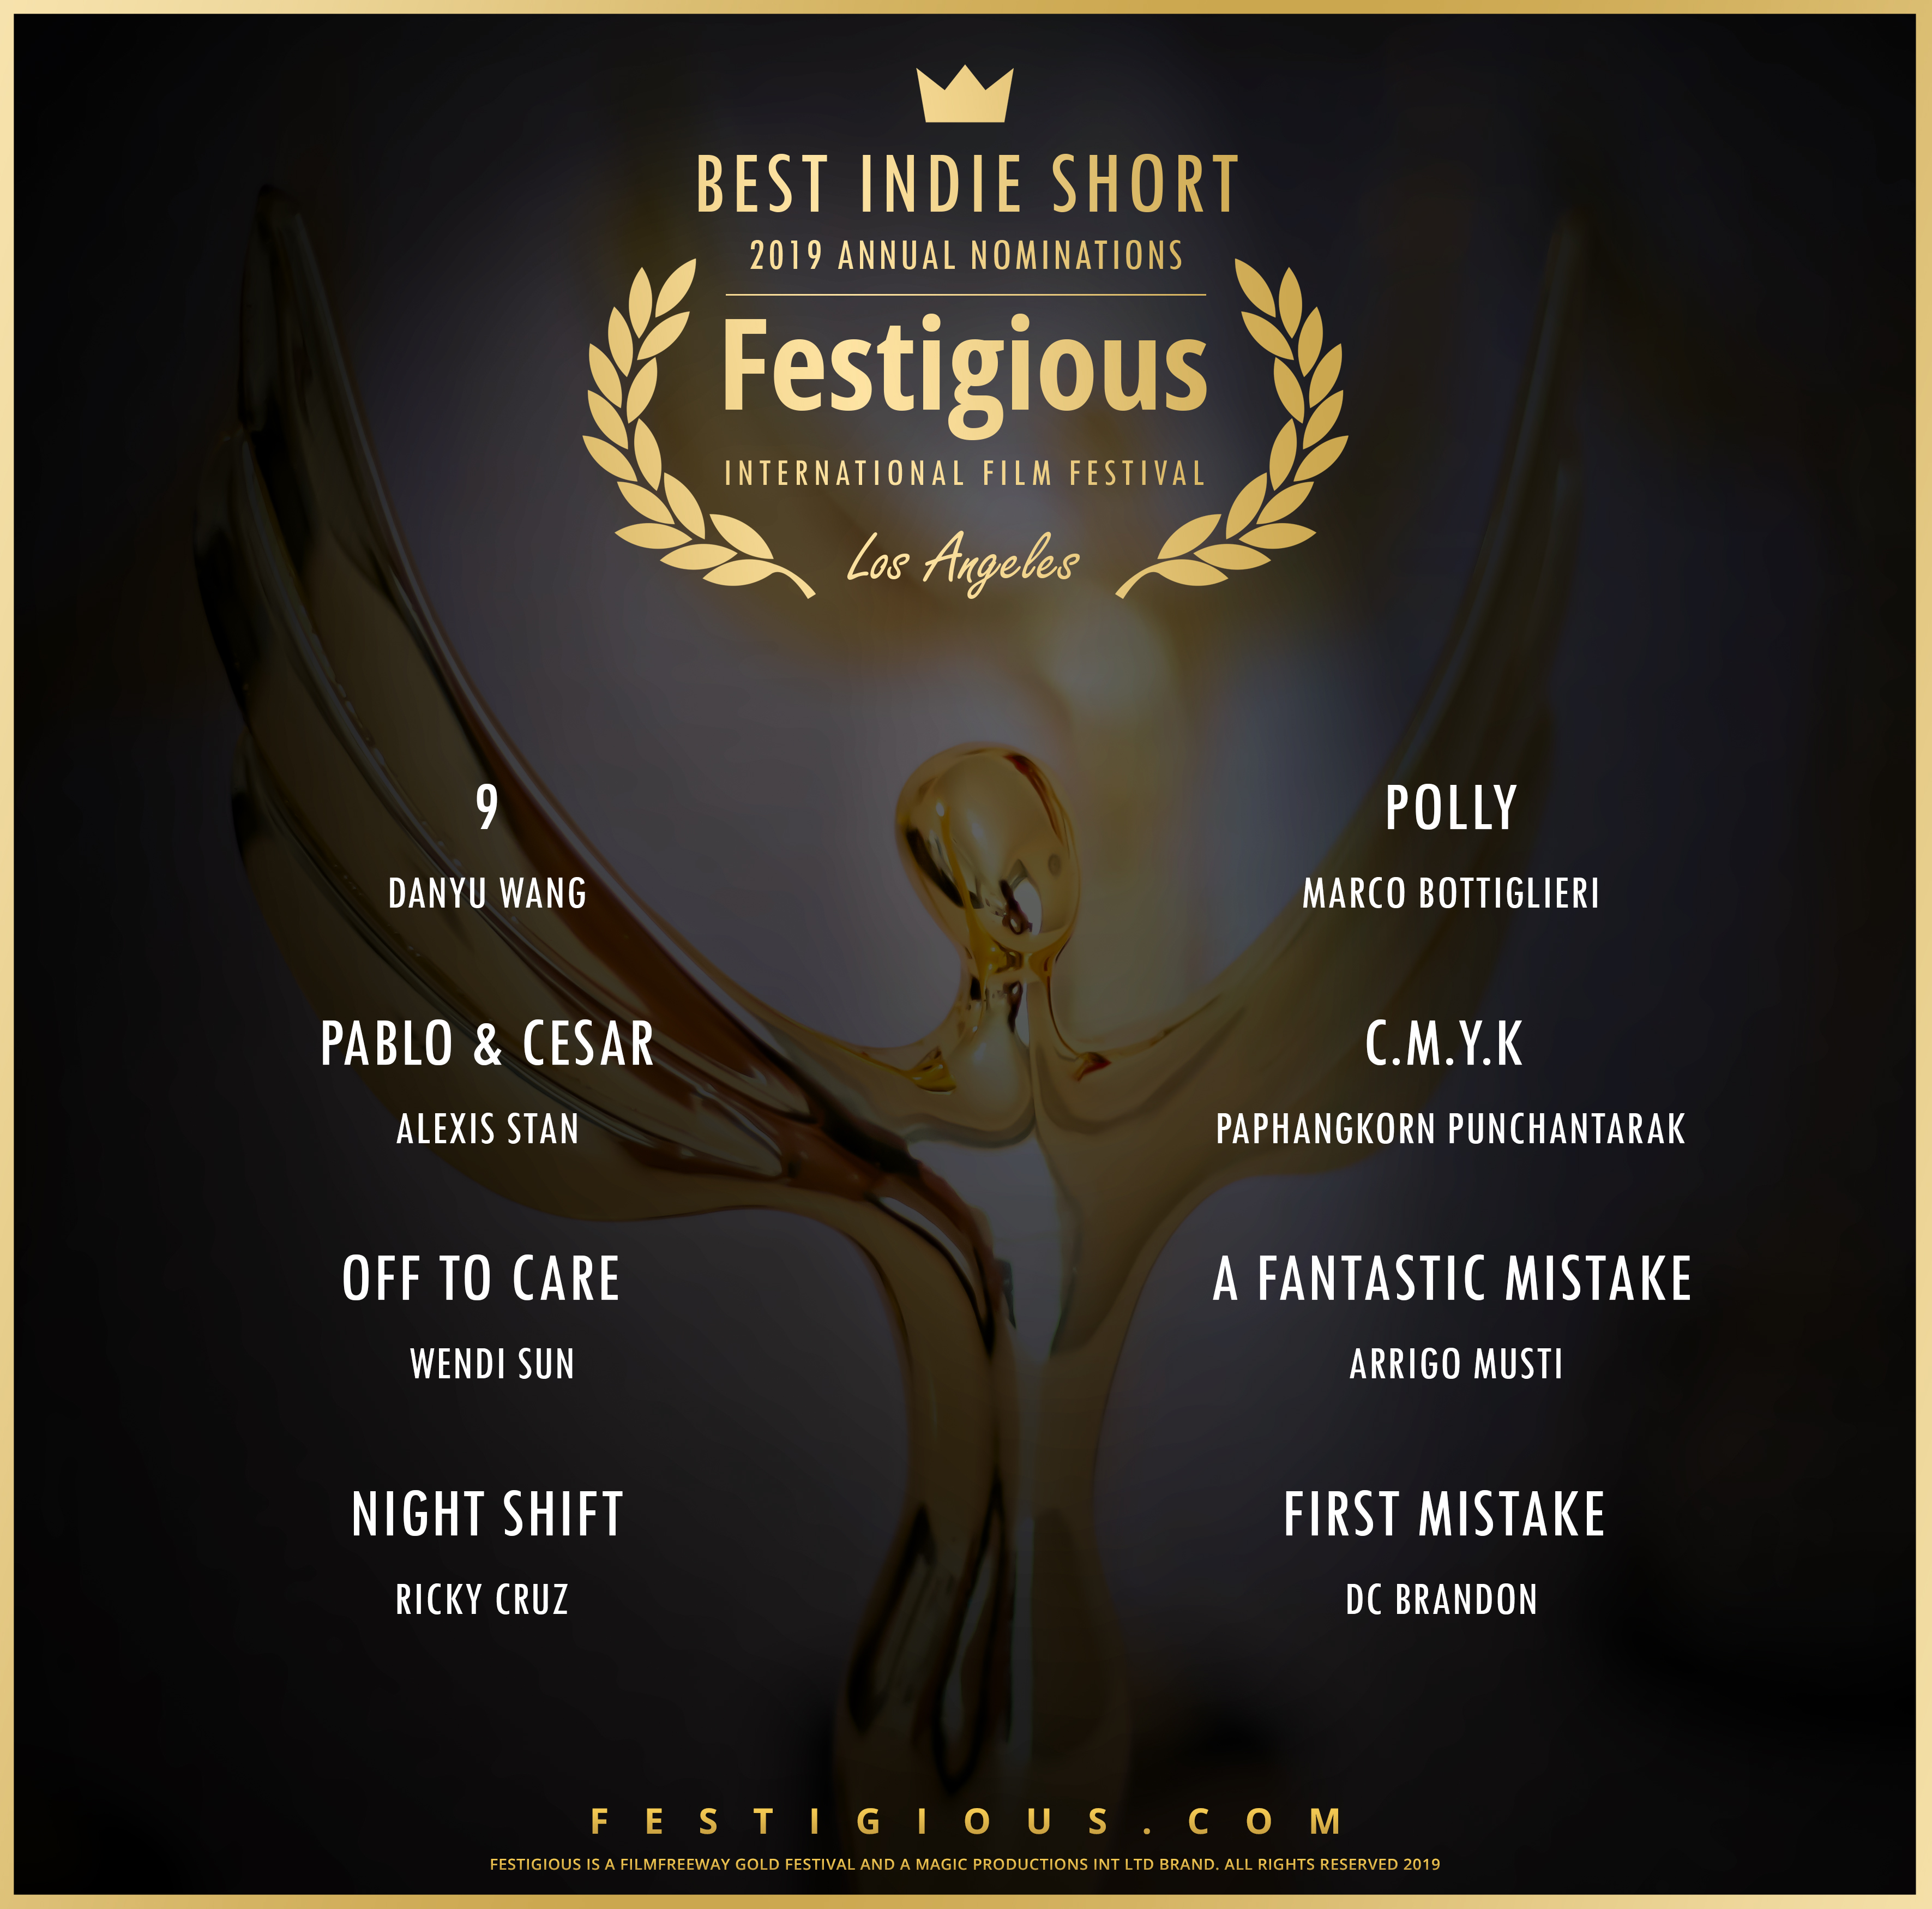 Festigious Best Indie Short